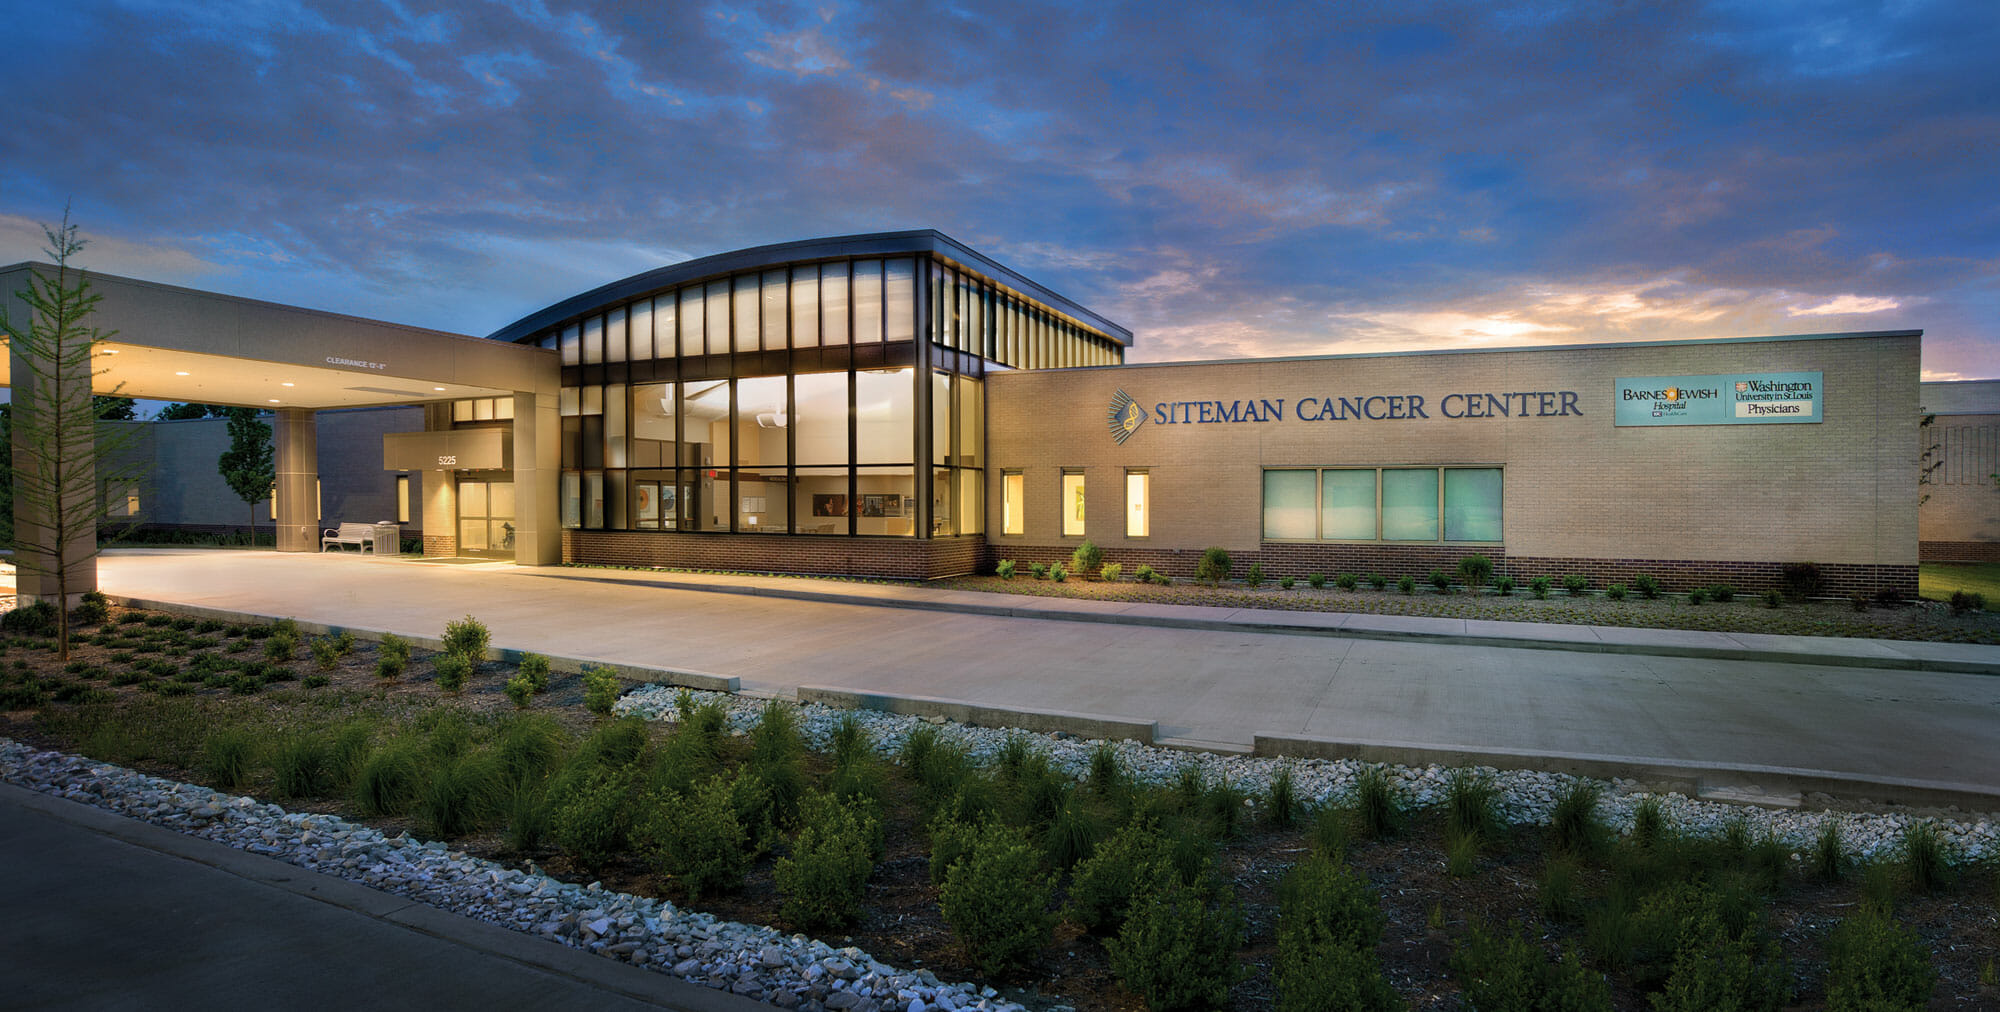 Siteman Cancer Center was named for the AGC Keystone Award Finalist